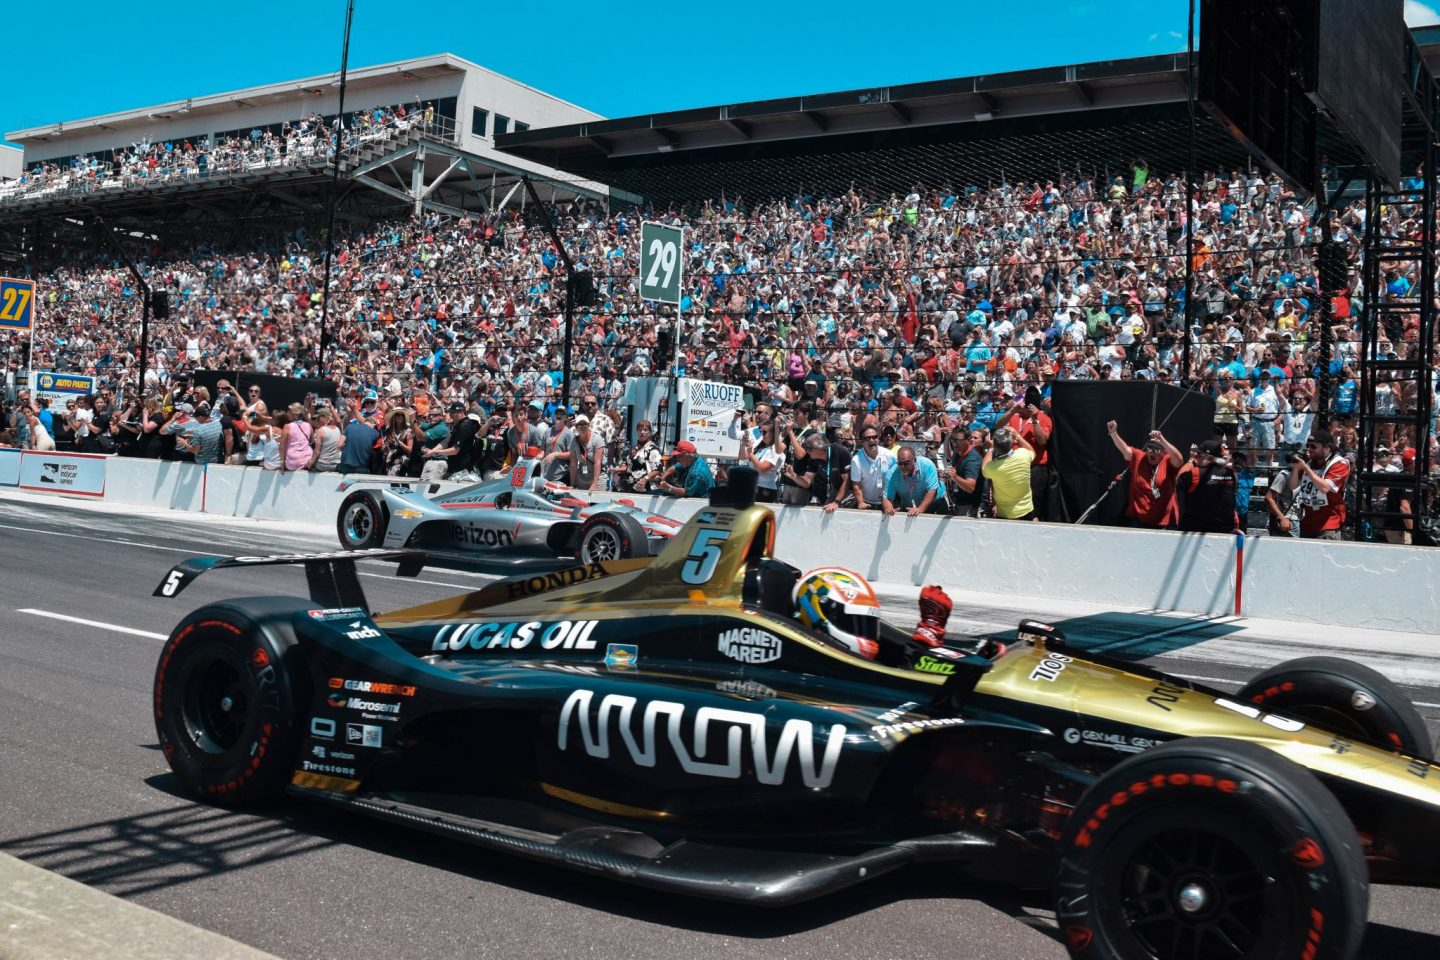 Gretchen Reese Digital, Monochrome Minimalist, Indianapolis 500, James Hinchcliff, 2018 Race